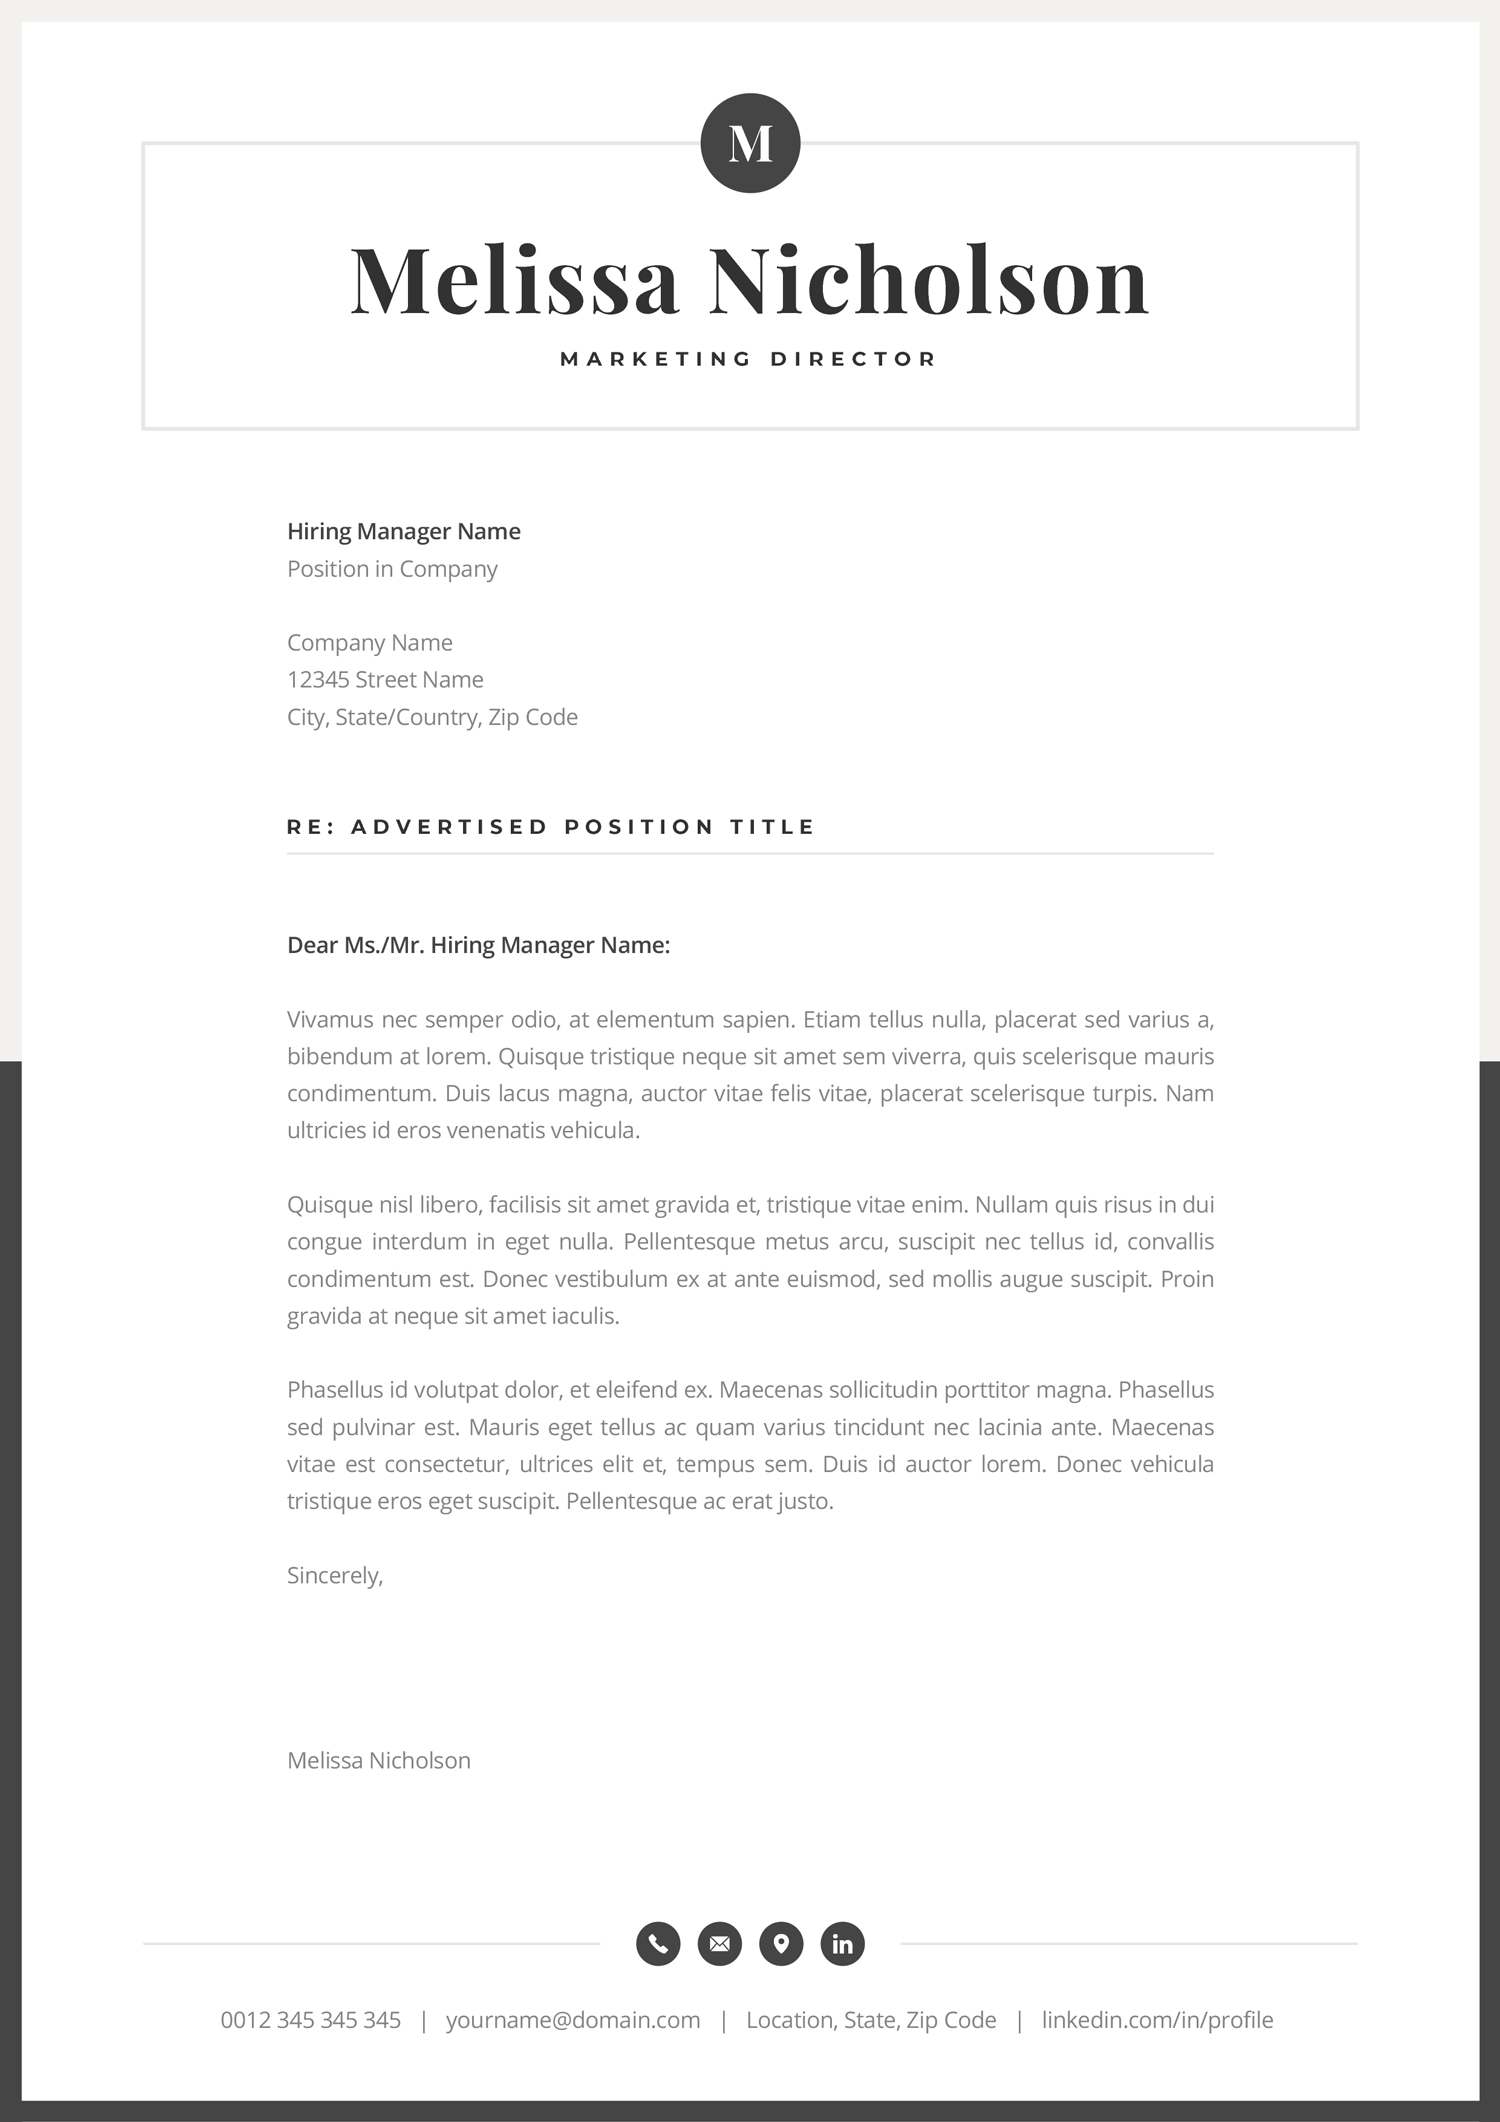 Professional cover letter template with modern and elegant